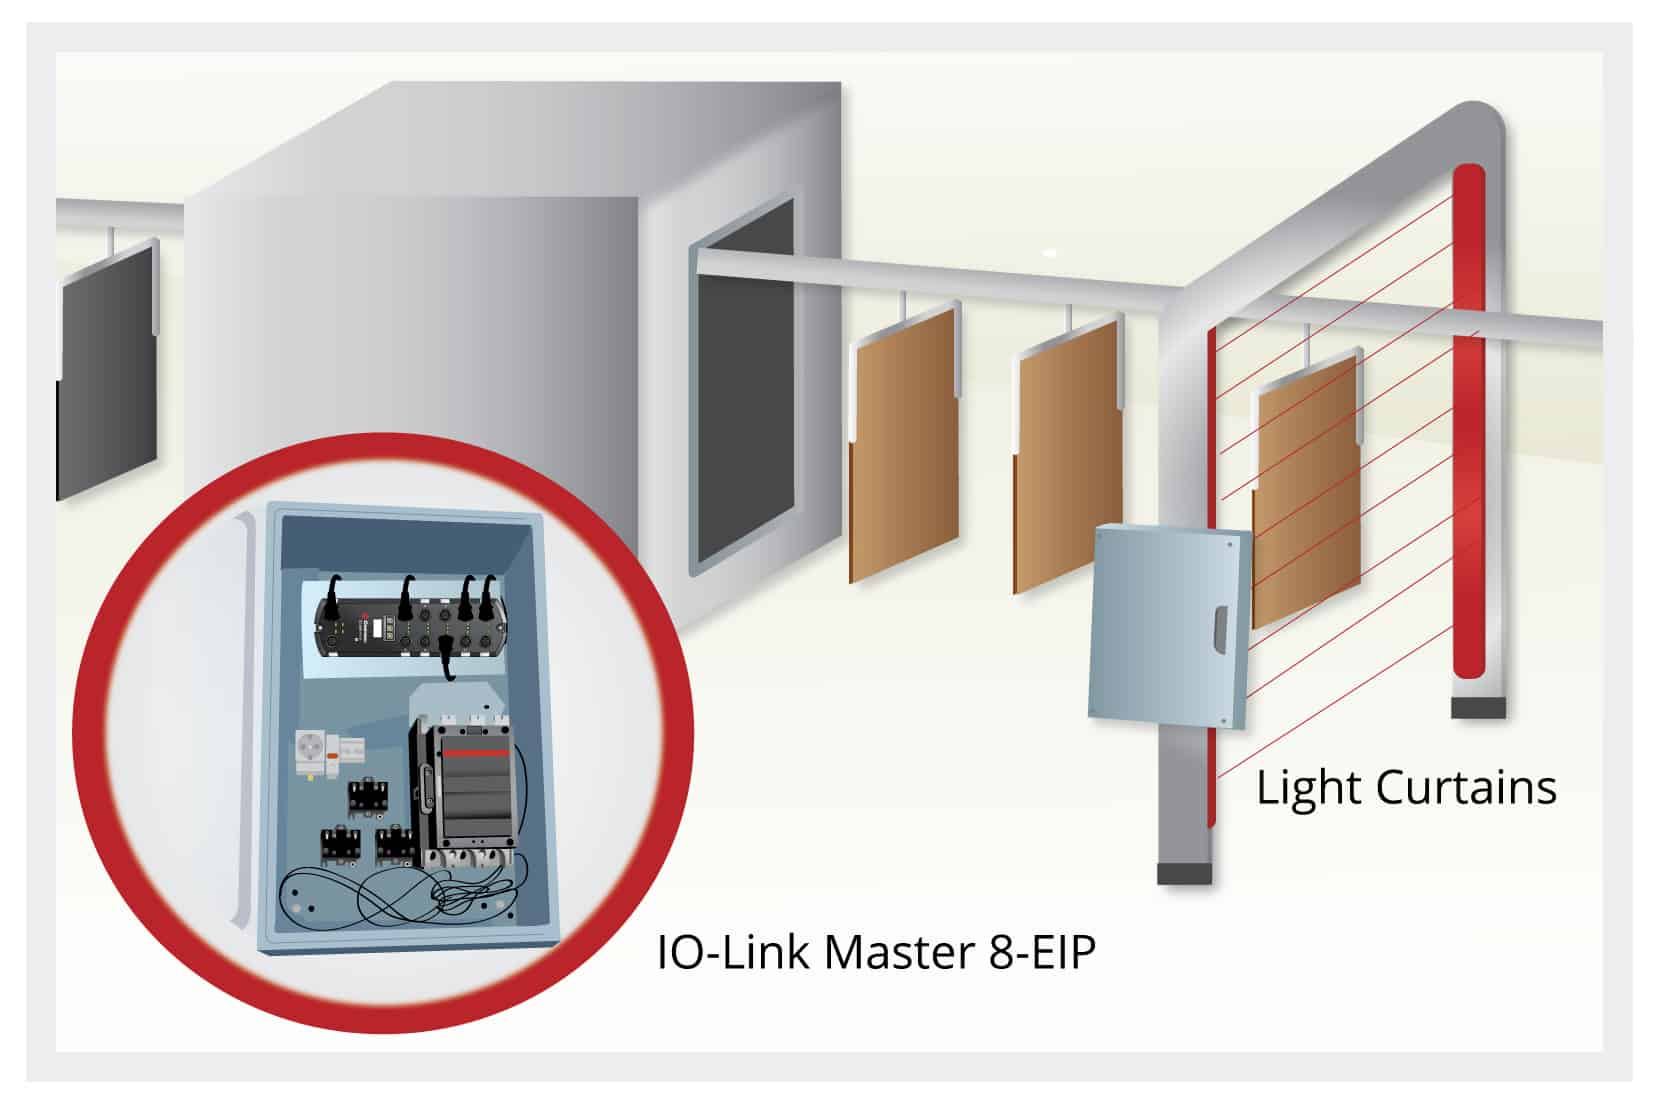 Paint Spraying Operation Integrates IO-Link